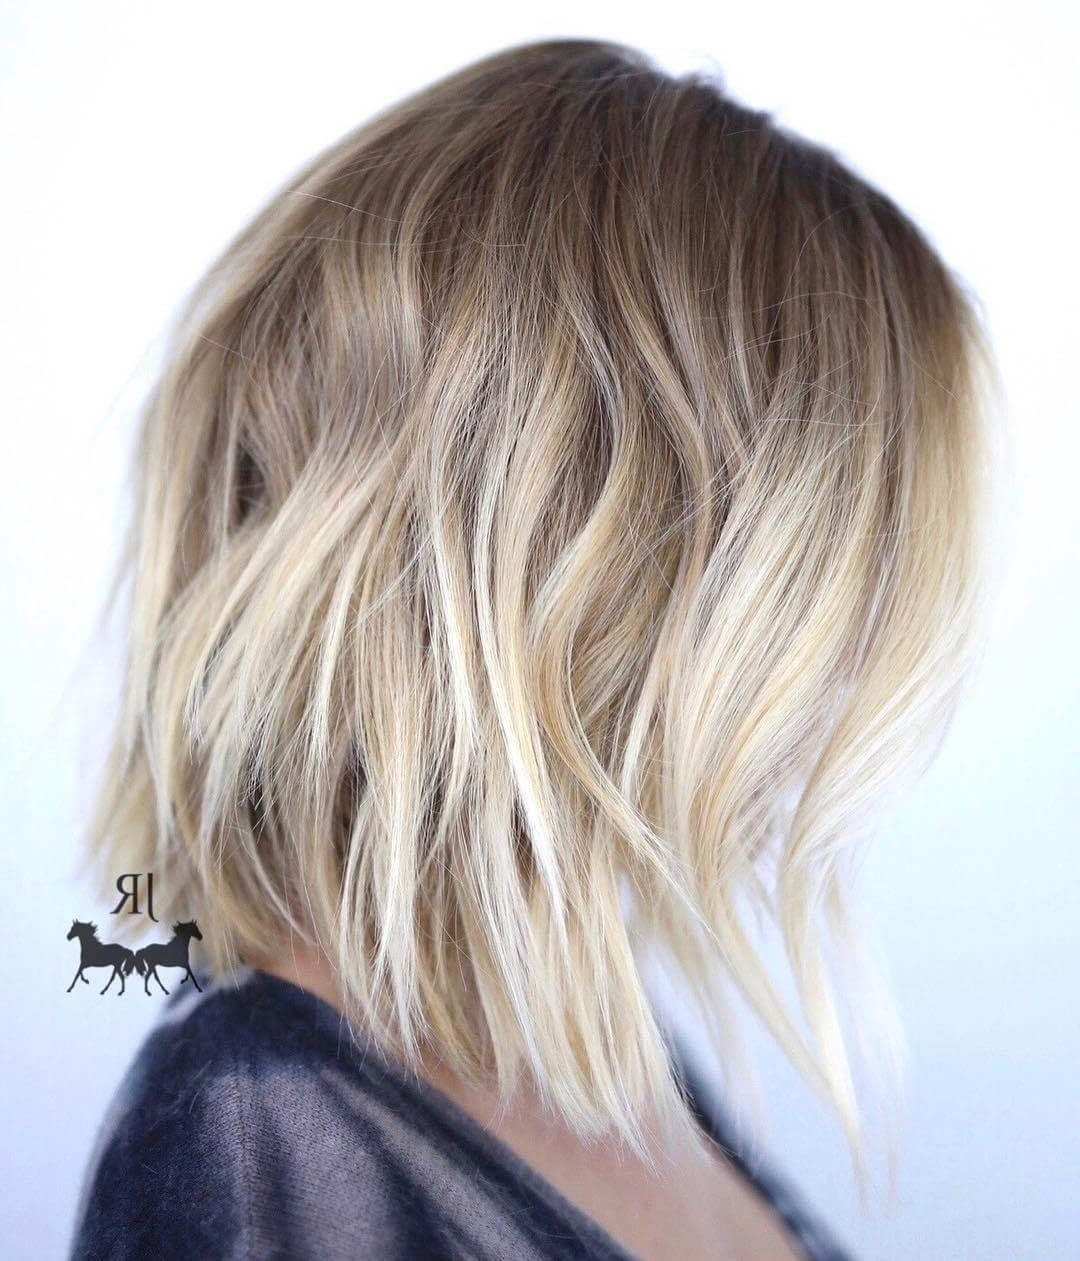 Newest Ash Blonde Half Up Hairstyles With 50 Fresh Short Blonde Hair Ideas To Update Your Style In  (View 15 of 20)